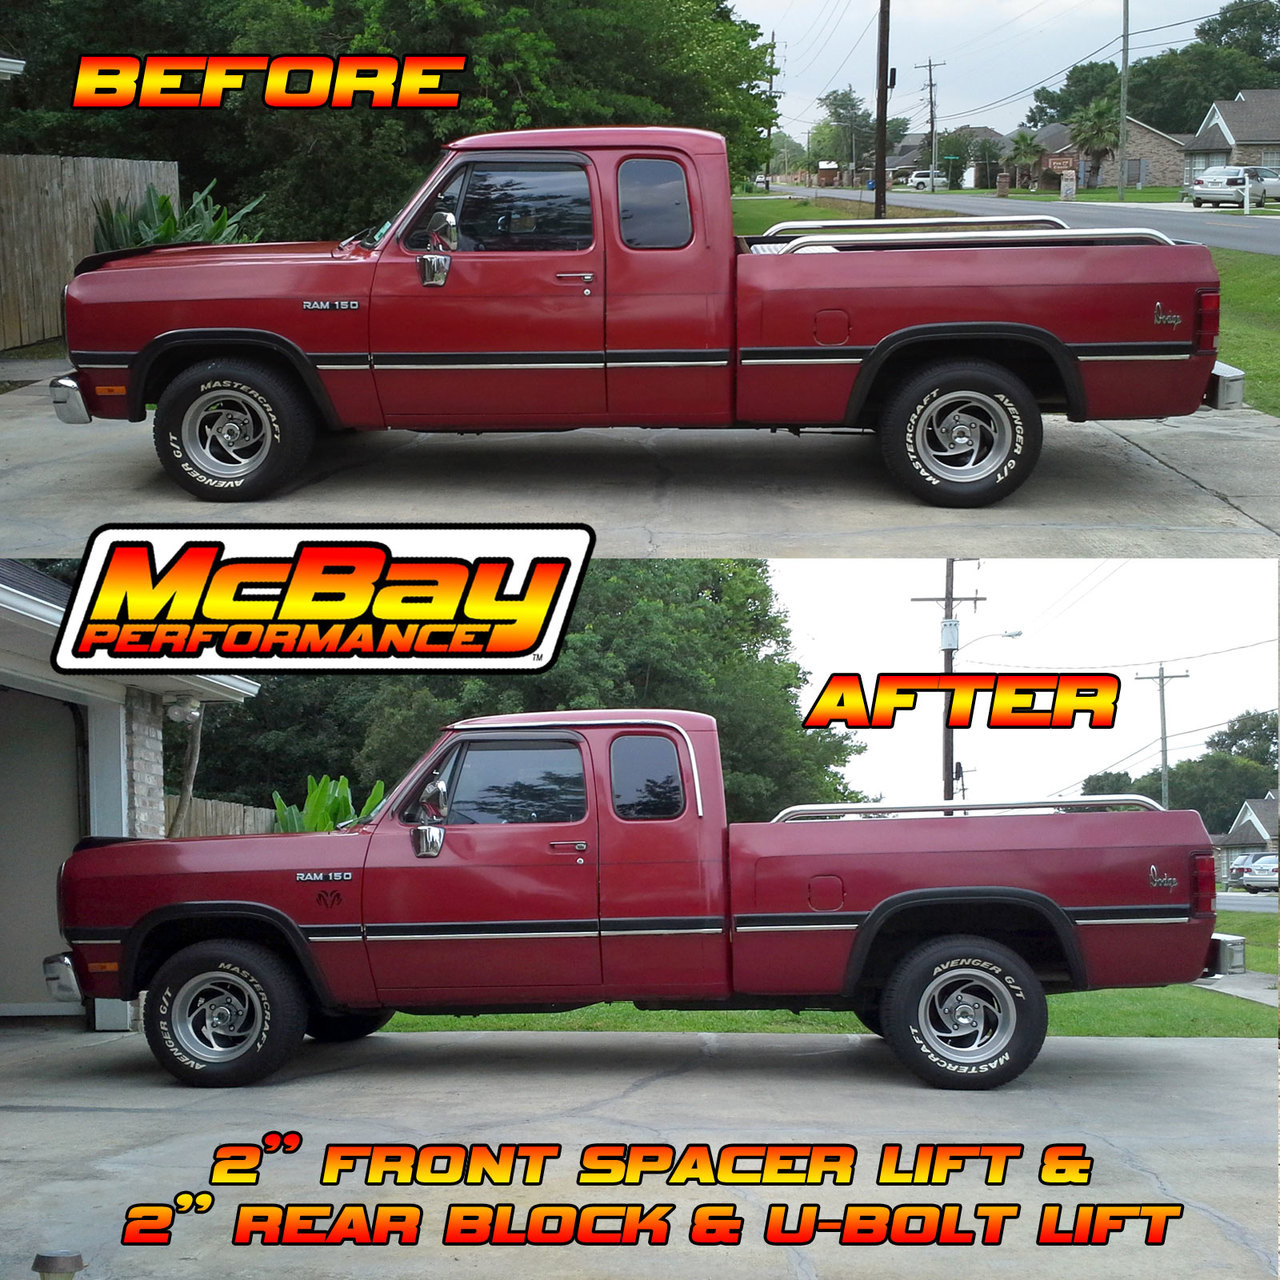 "1905 - 1-7/8"" to 2-1/4"" Coil Spring Lift Installed on a Ram D150 2WD"